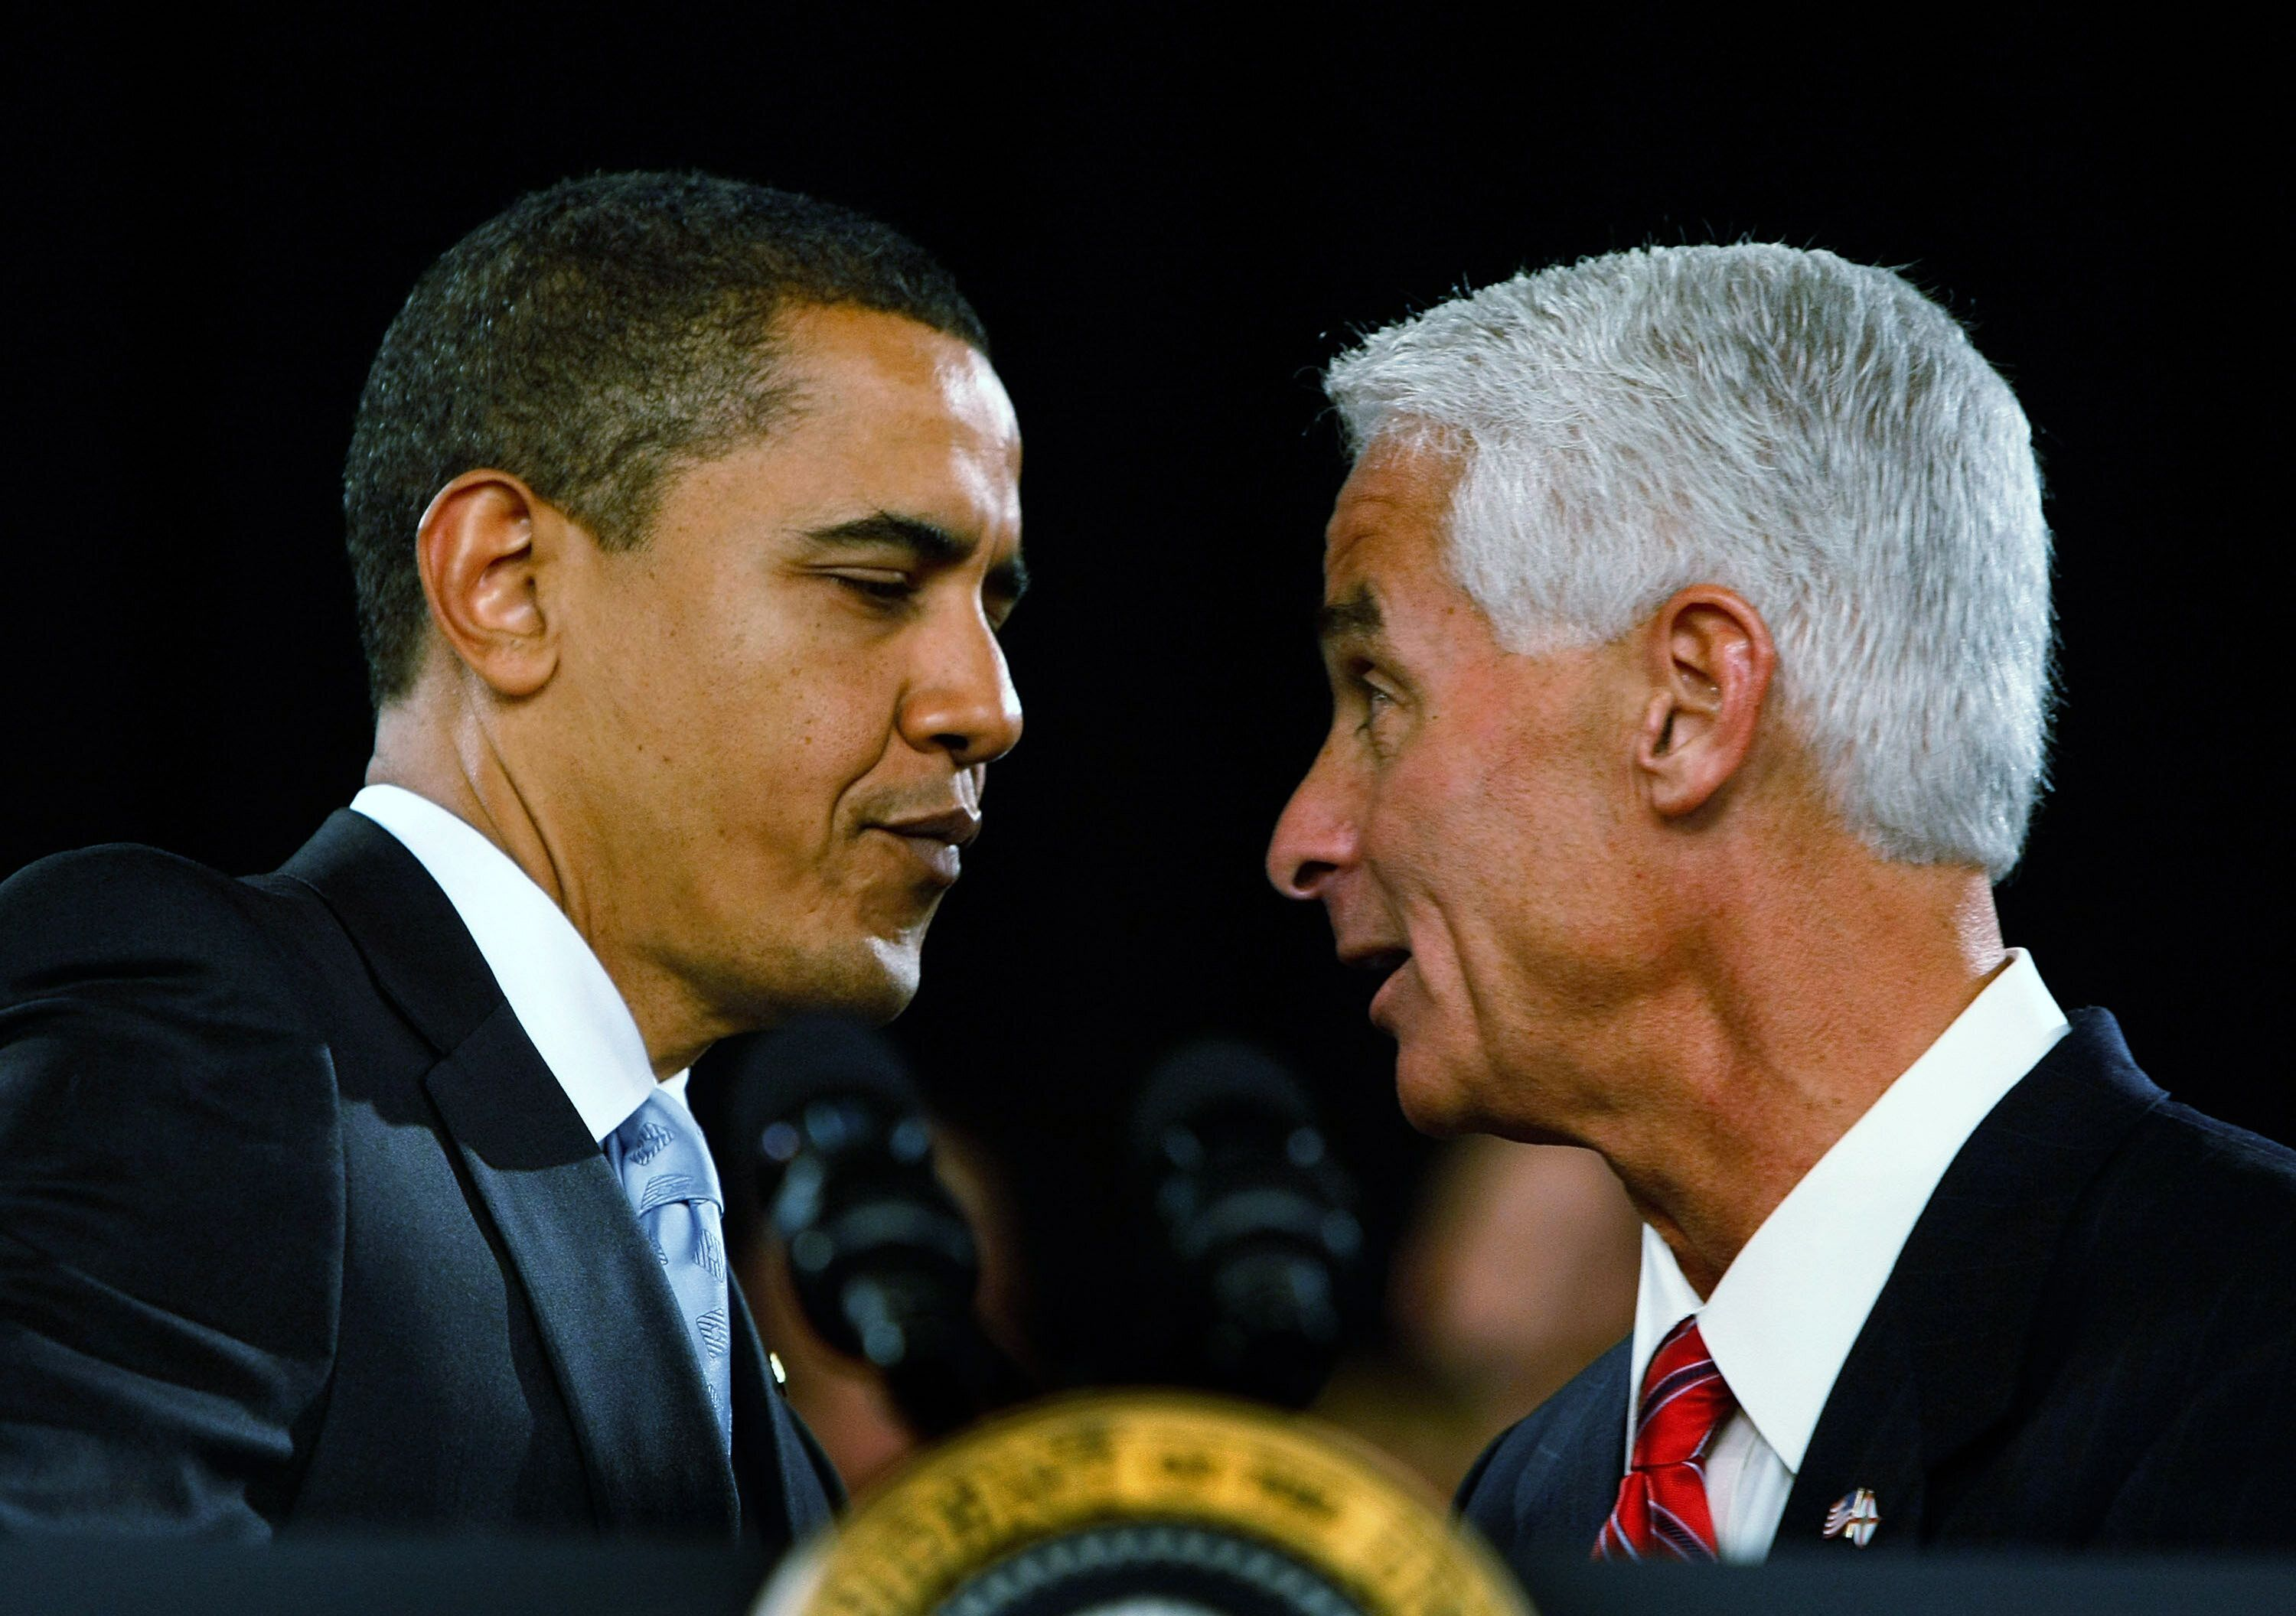 Then-Republican Gov. Charlie Crist introduces then-President Barack Obama during a town hall meeting on Feb. 10, 2009, in For